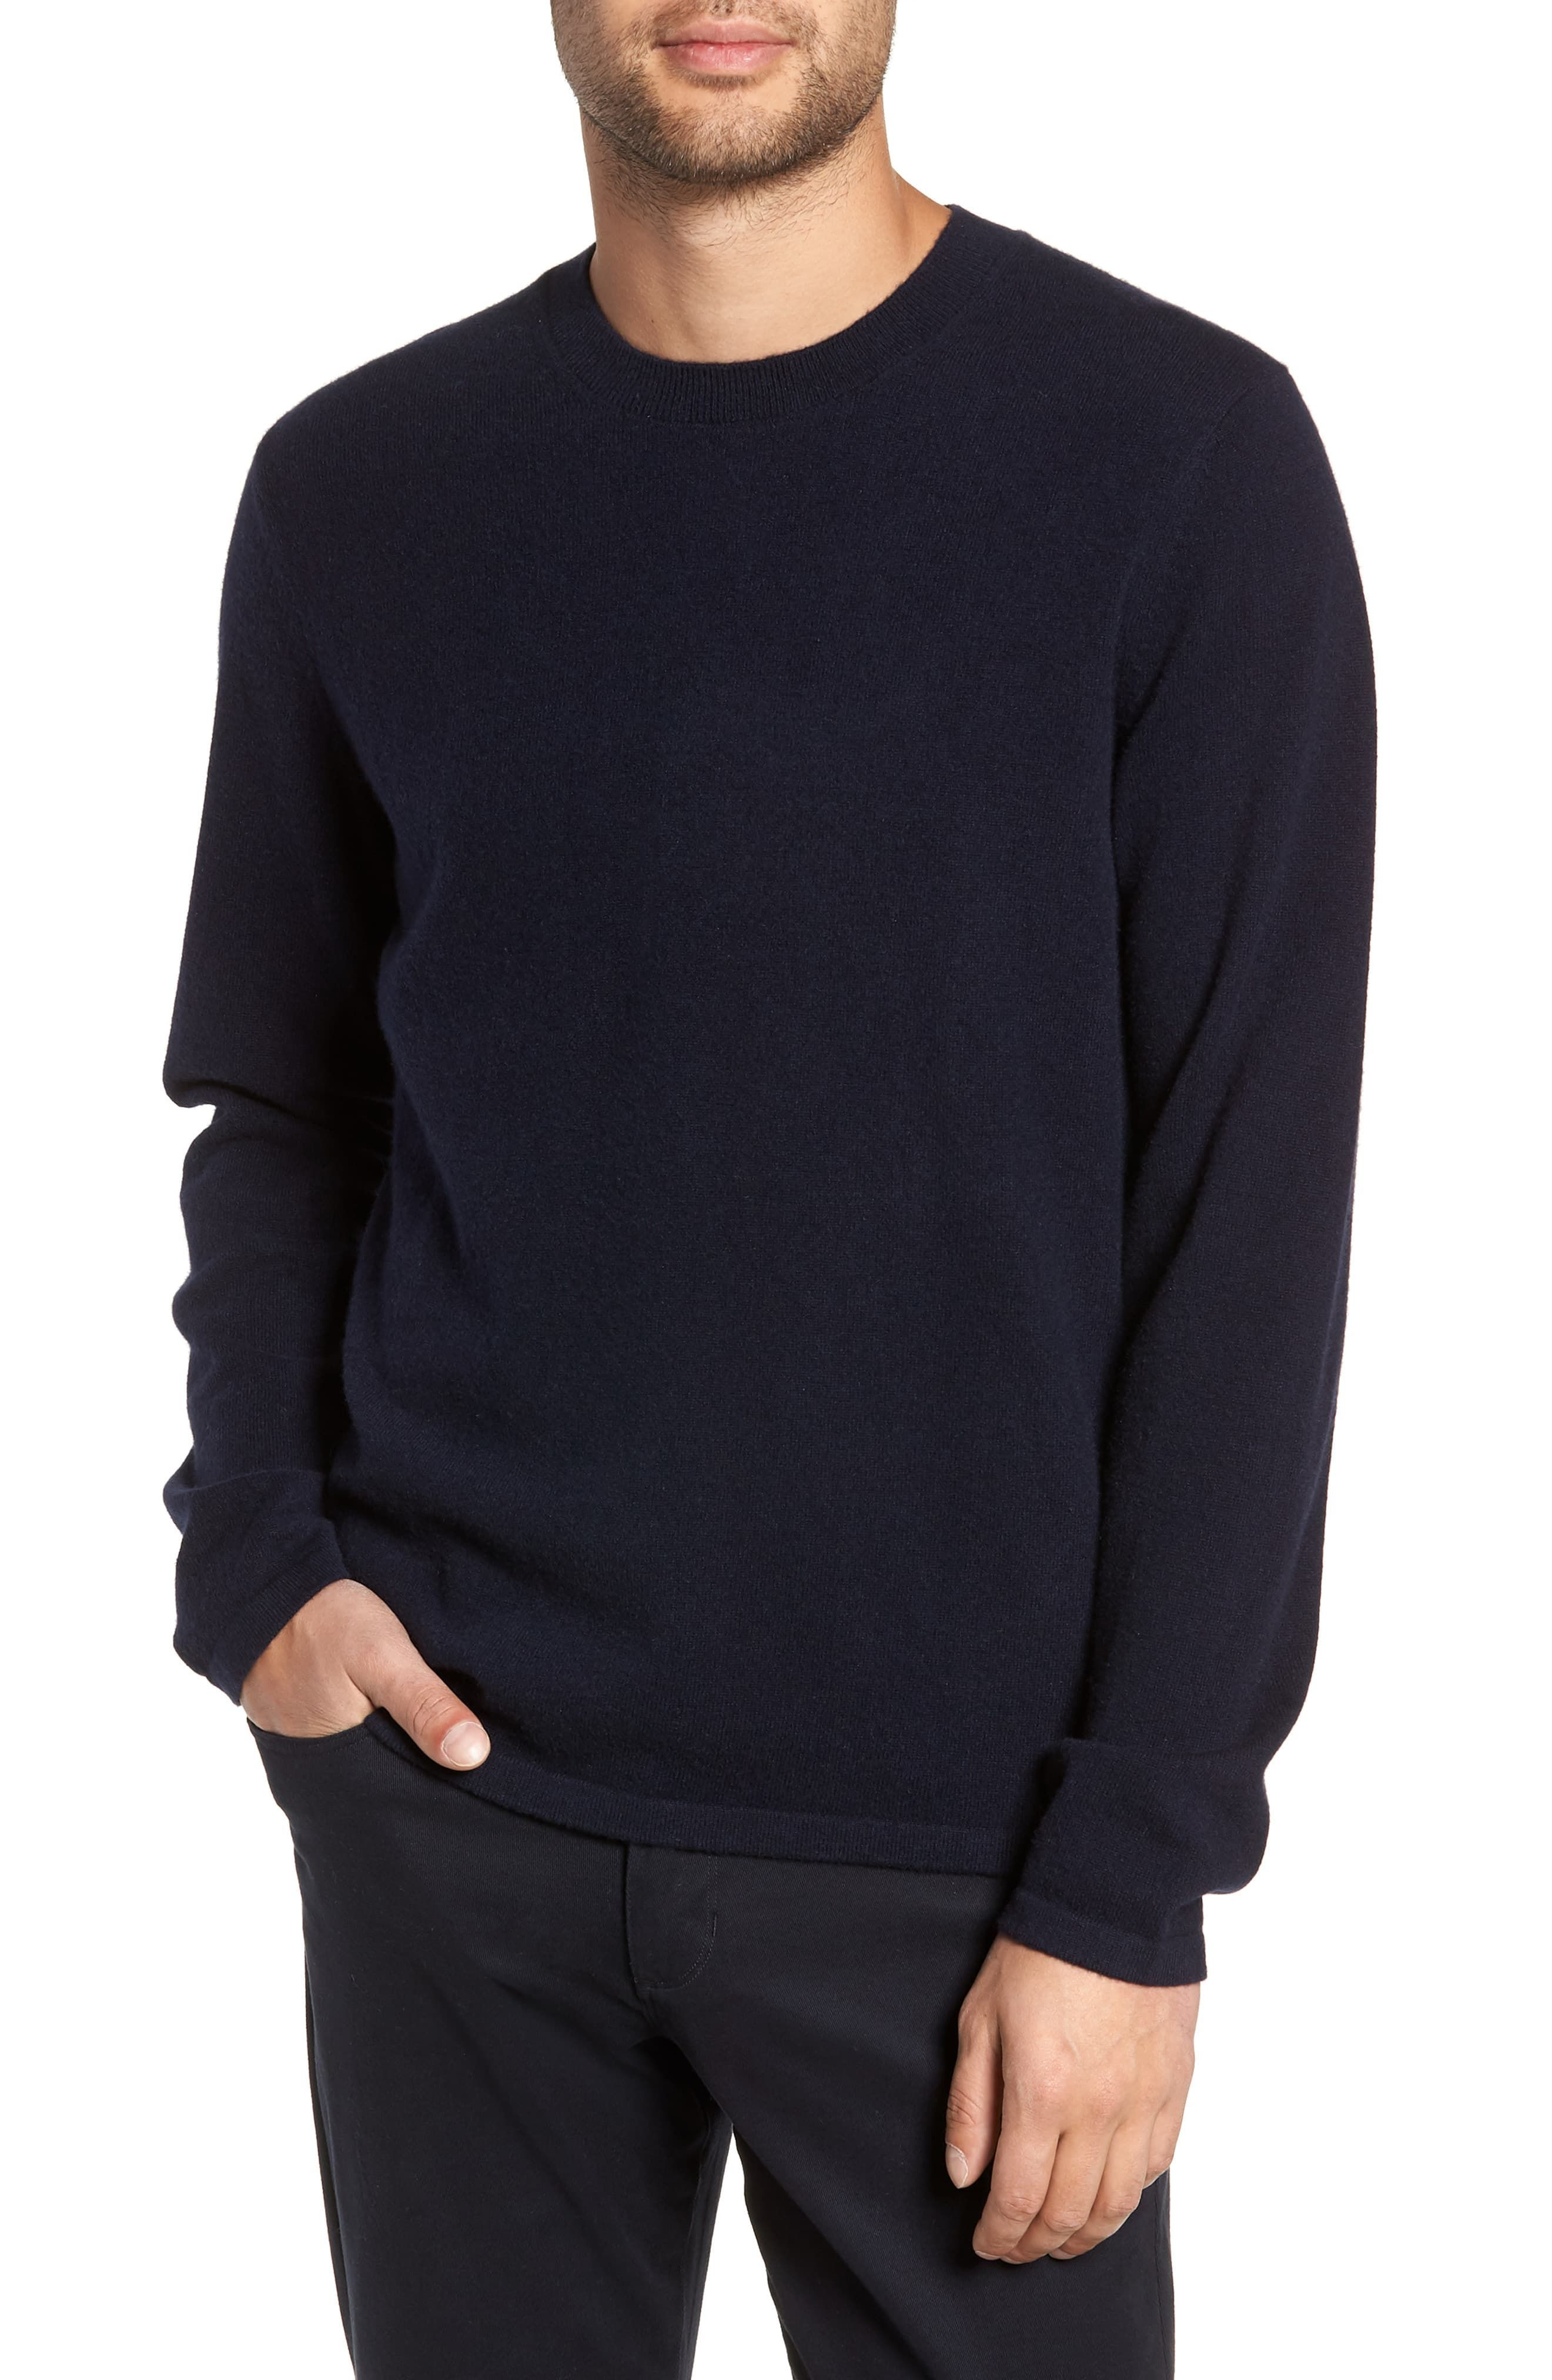 New Vince Henley Mens Long Sleeve Soft Pima Cotton Top T-Shirt  Thin Sweater